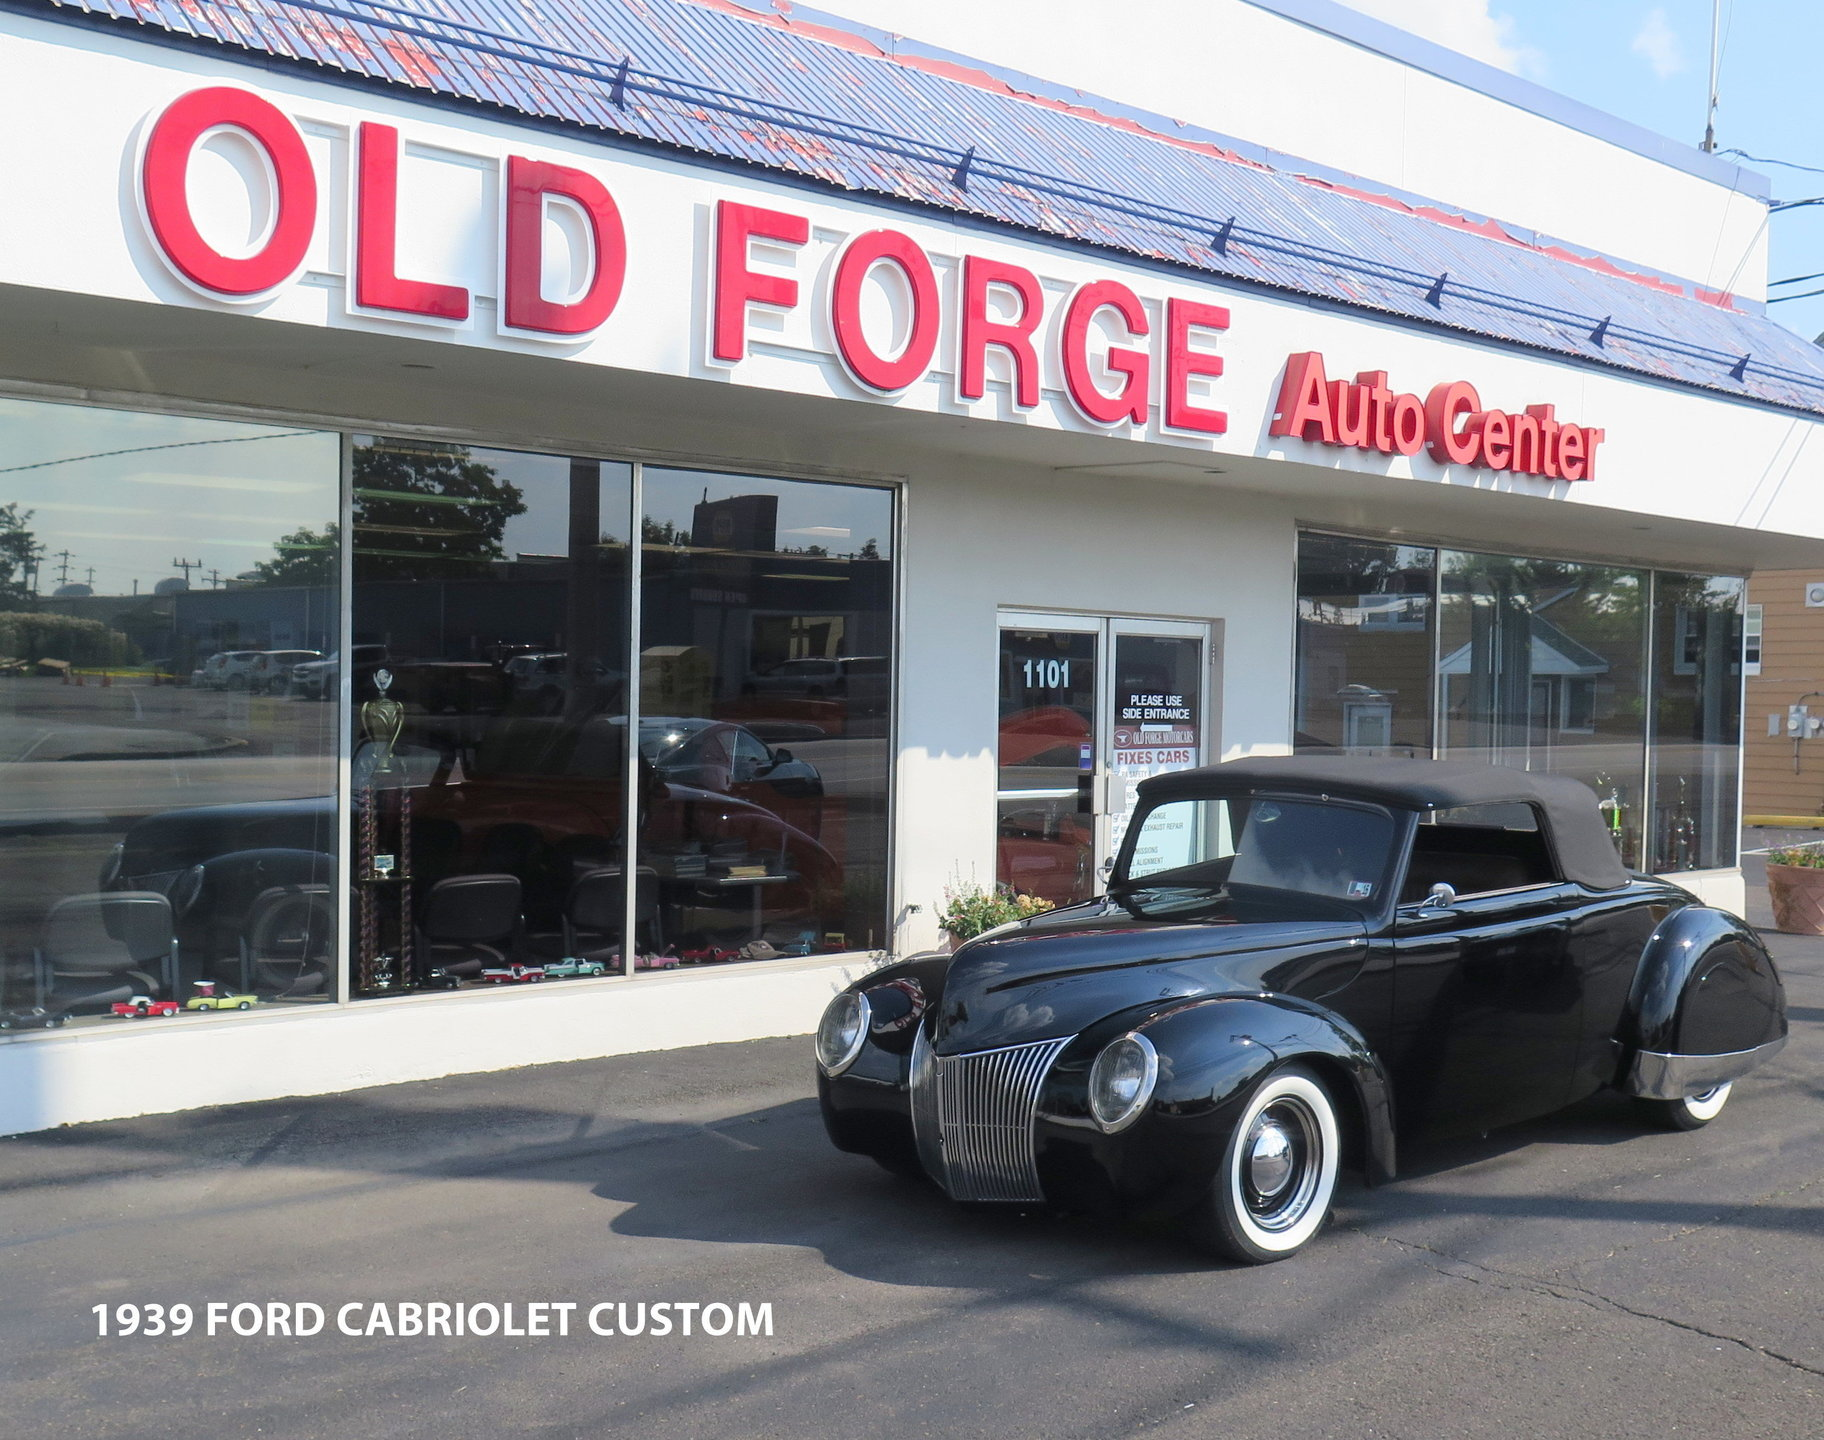 238748061c496 hd 1939 ford cabriolet